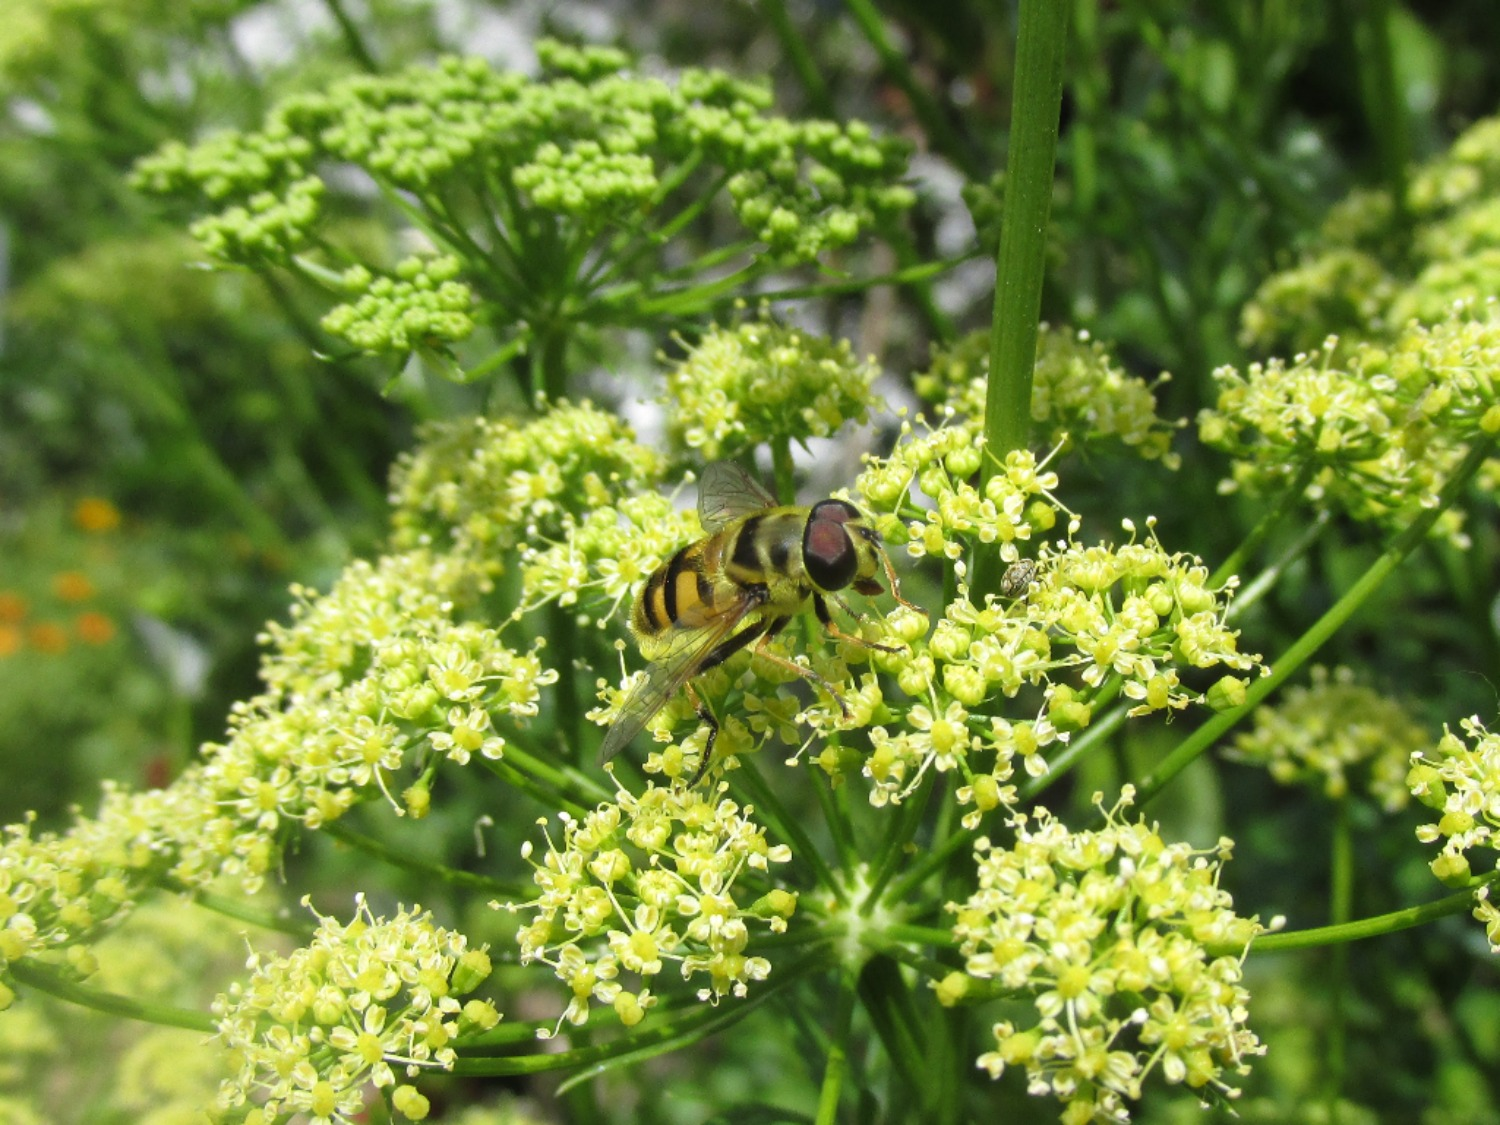 Pollinator on parsley flower